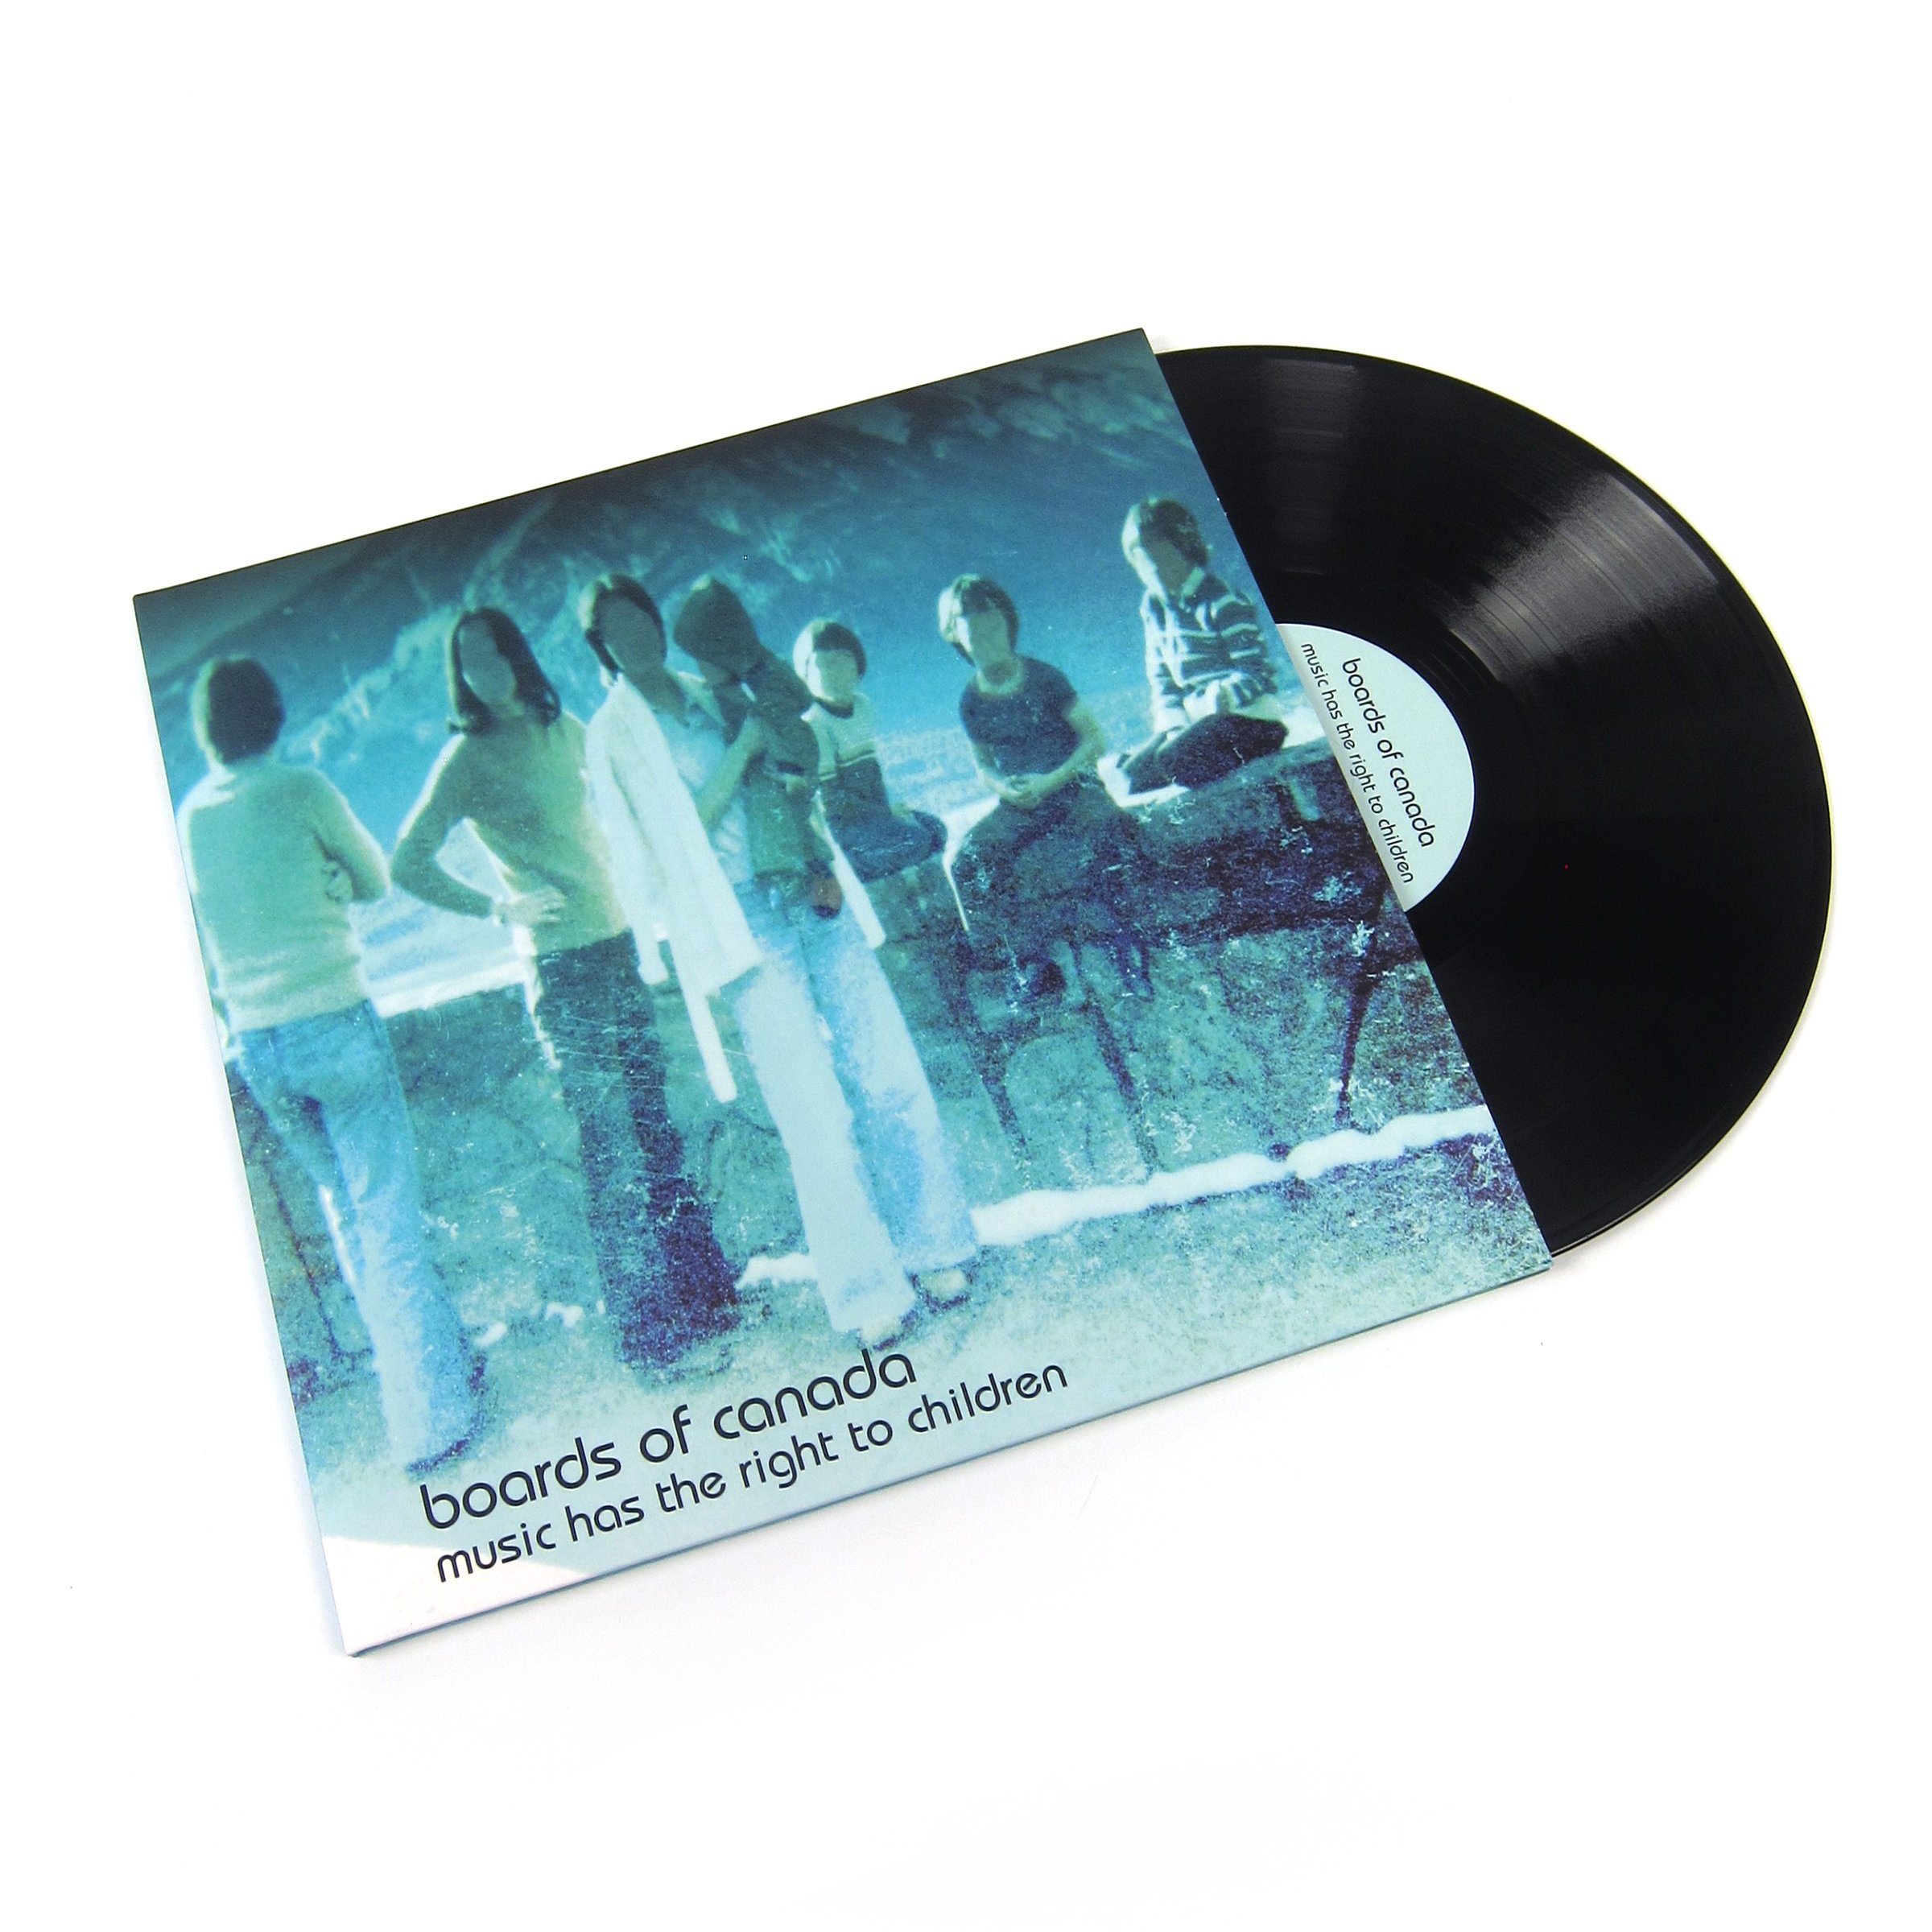 Boards Of Canada Music Has The Right To Children Vinyl 2lp Boards Of Canada Music